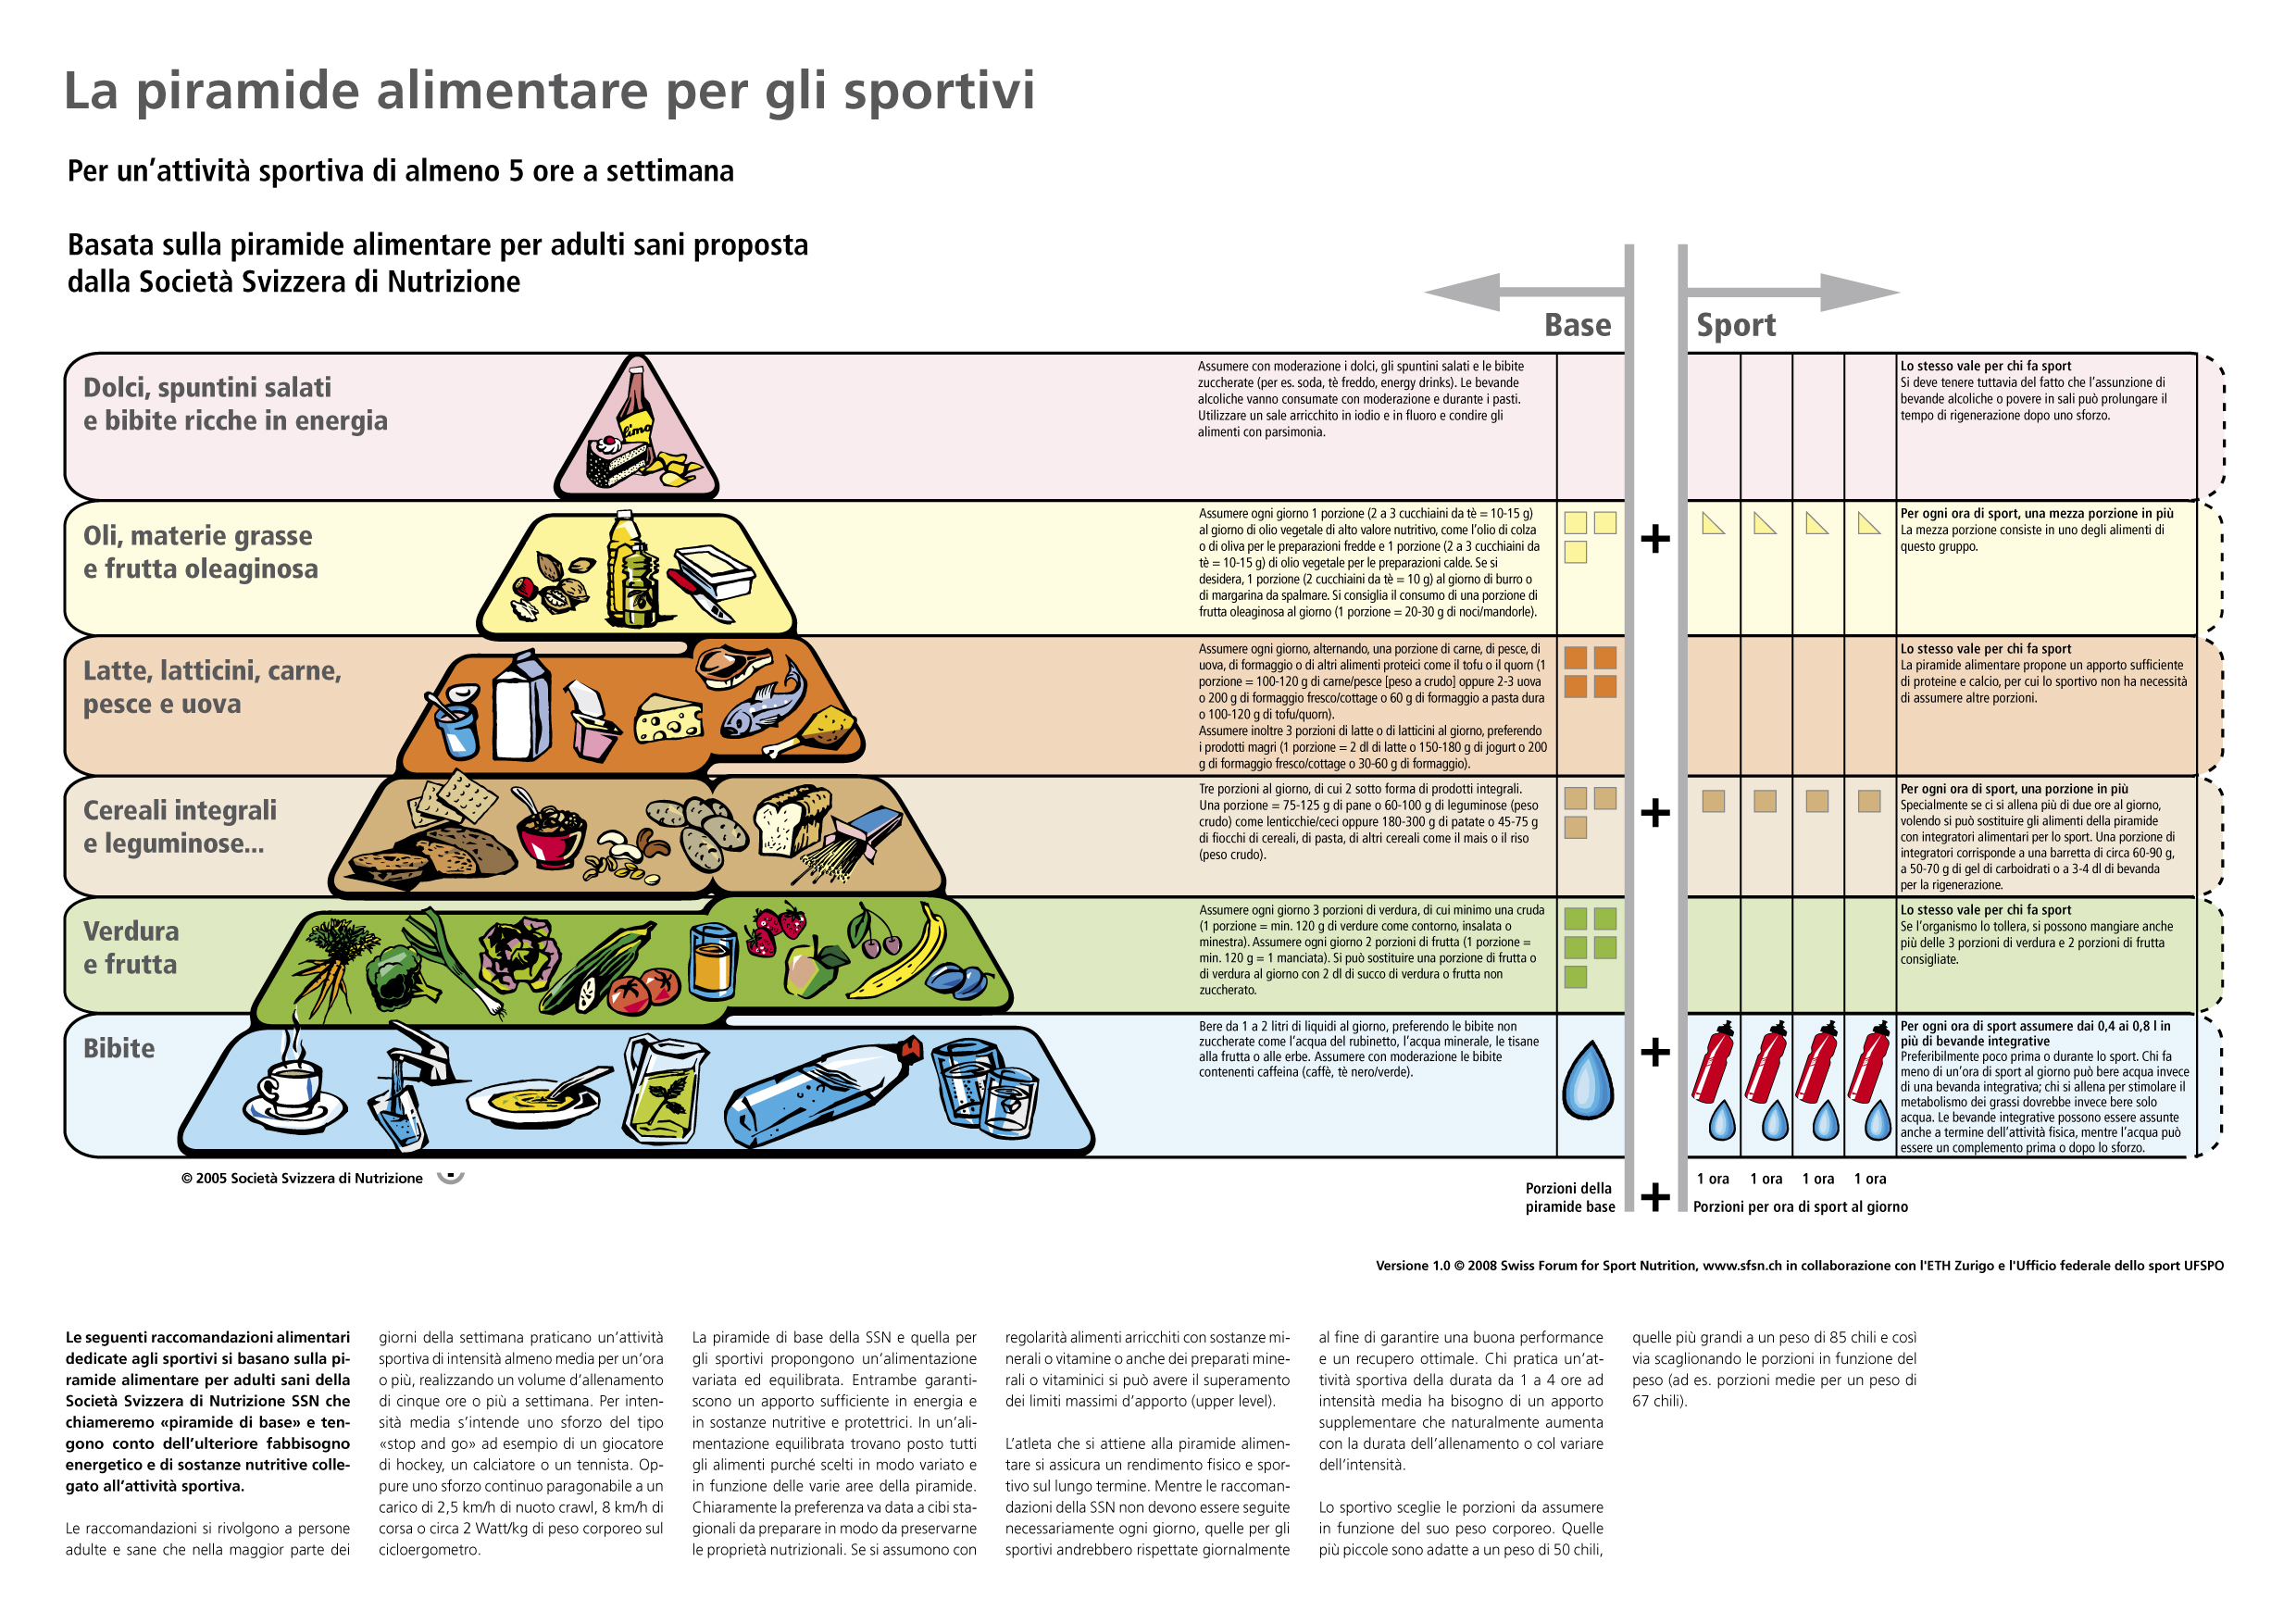 sports nutrition needs analysis